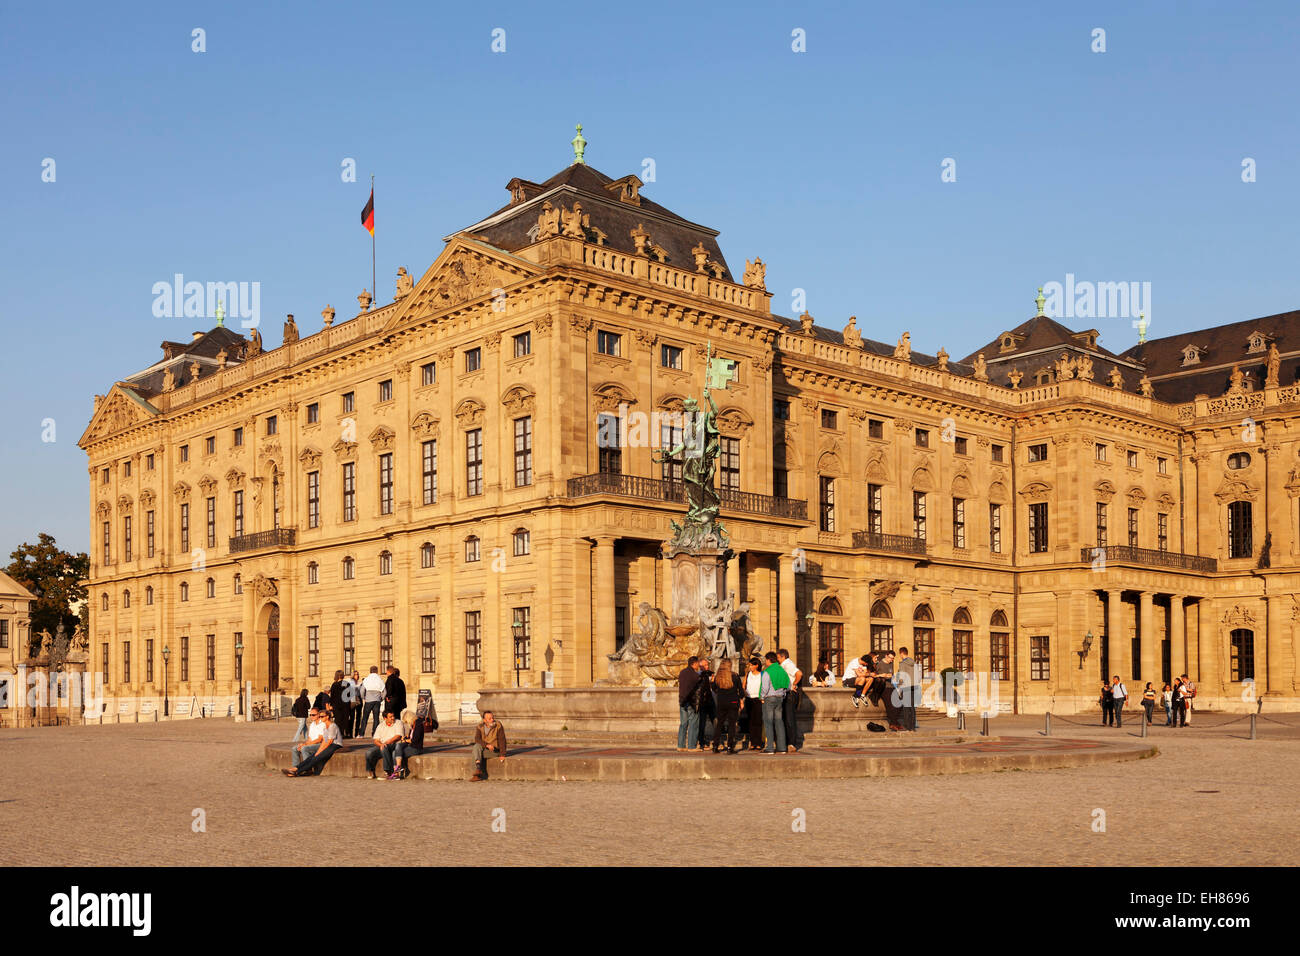 franconia fountain stockfotos franconia fountain bilder alamy. Black Bedroom Furniture Sets. Home Design Ideas